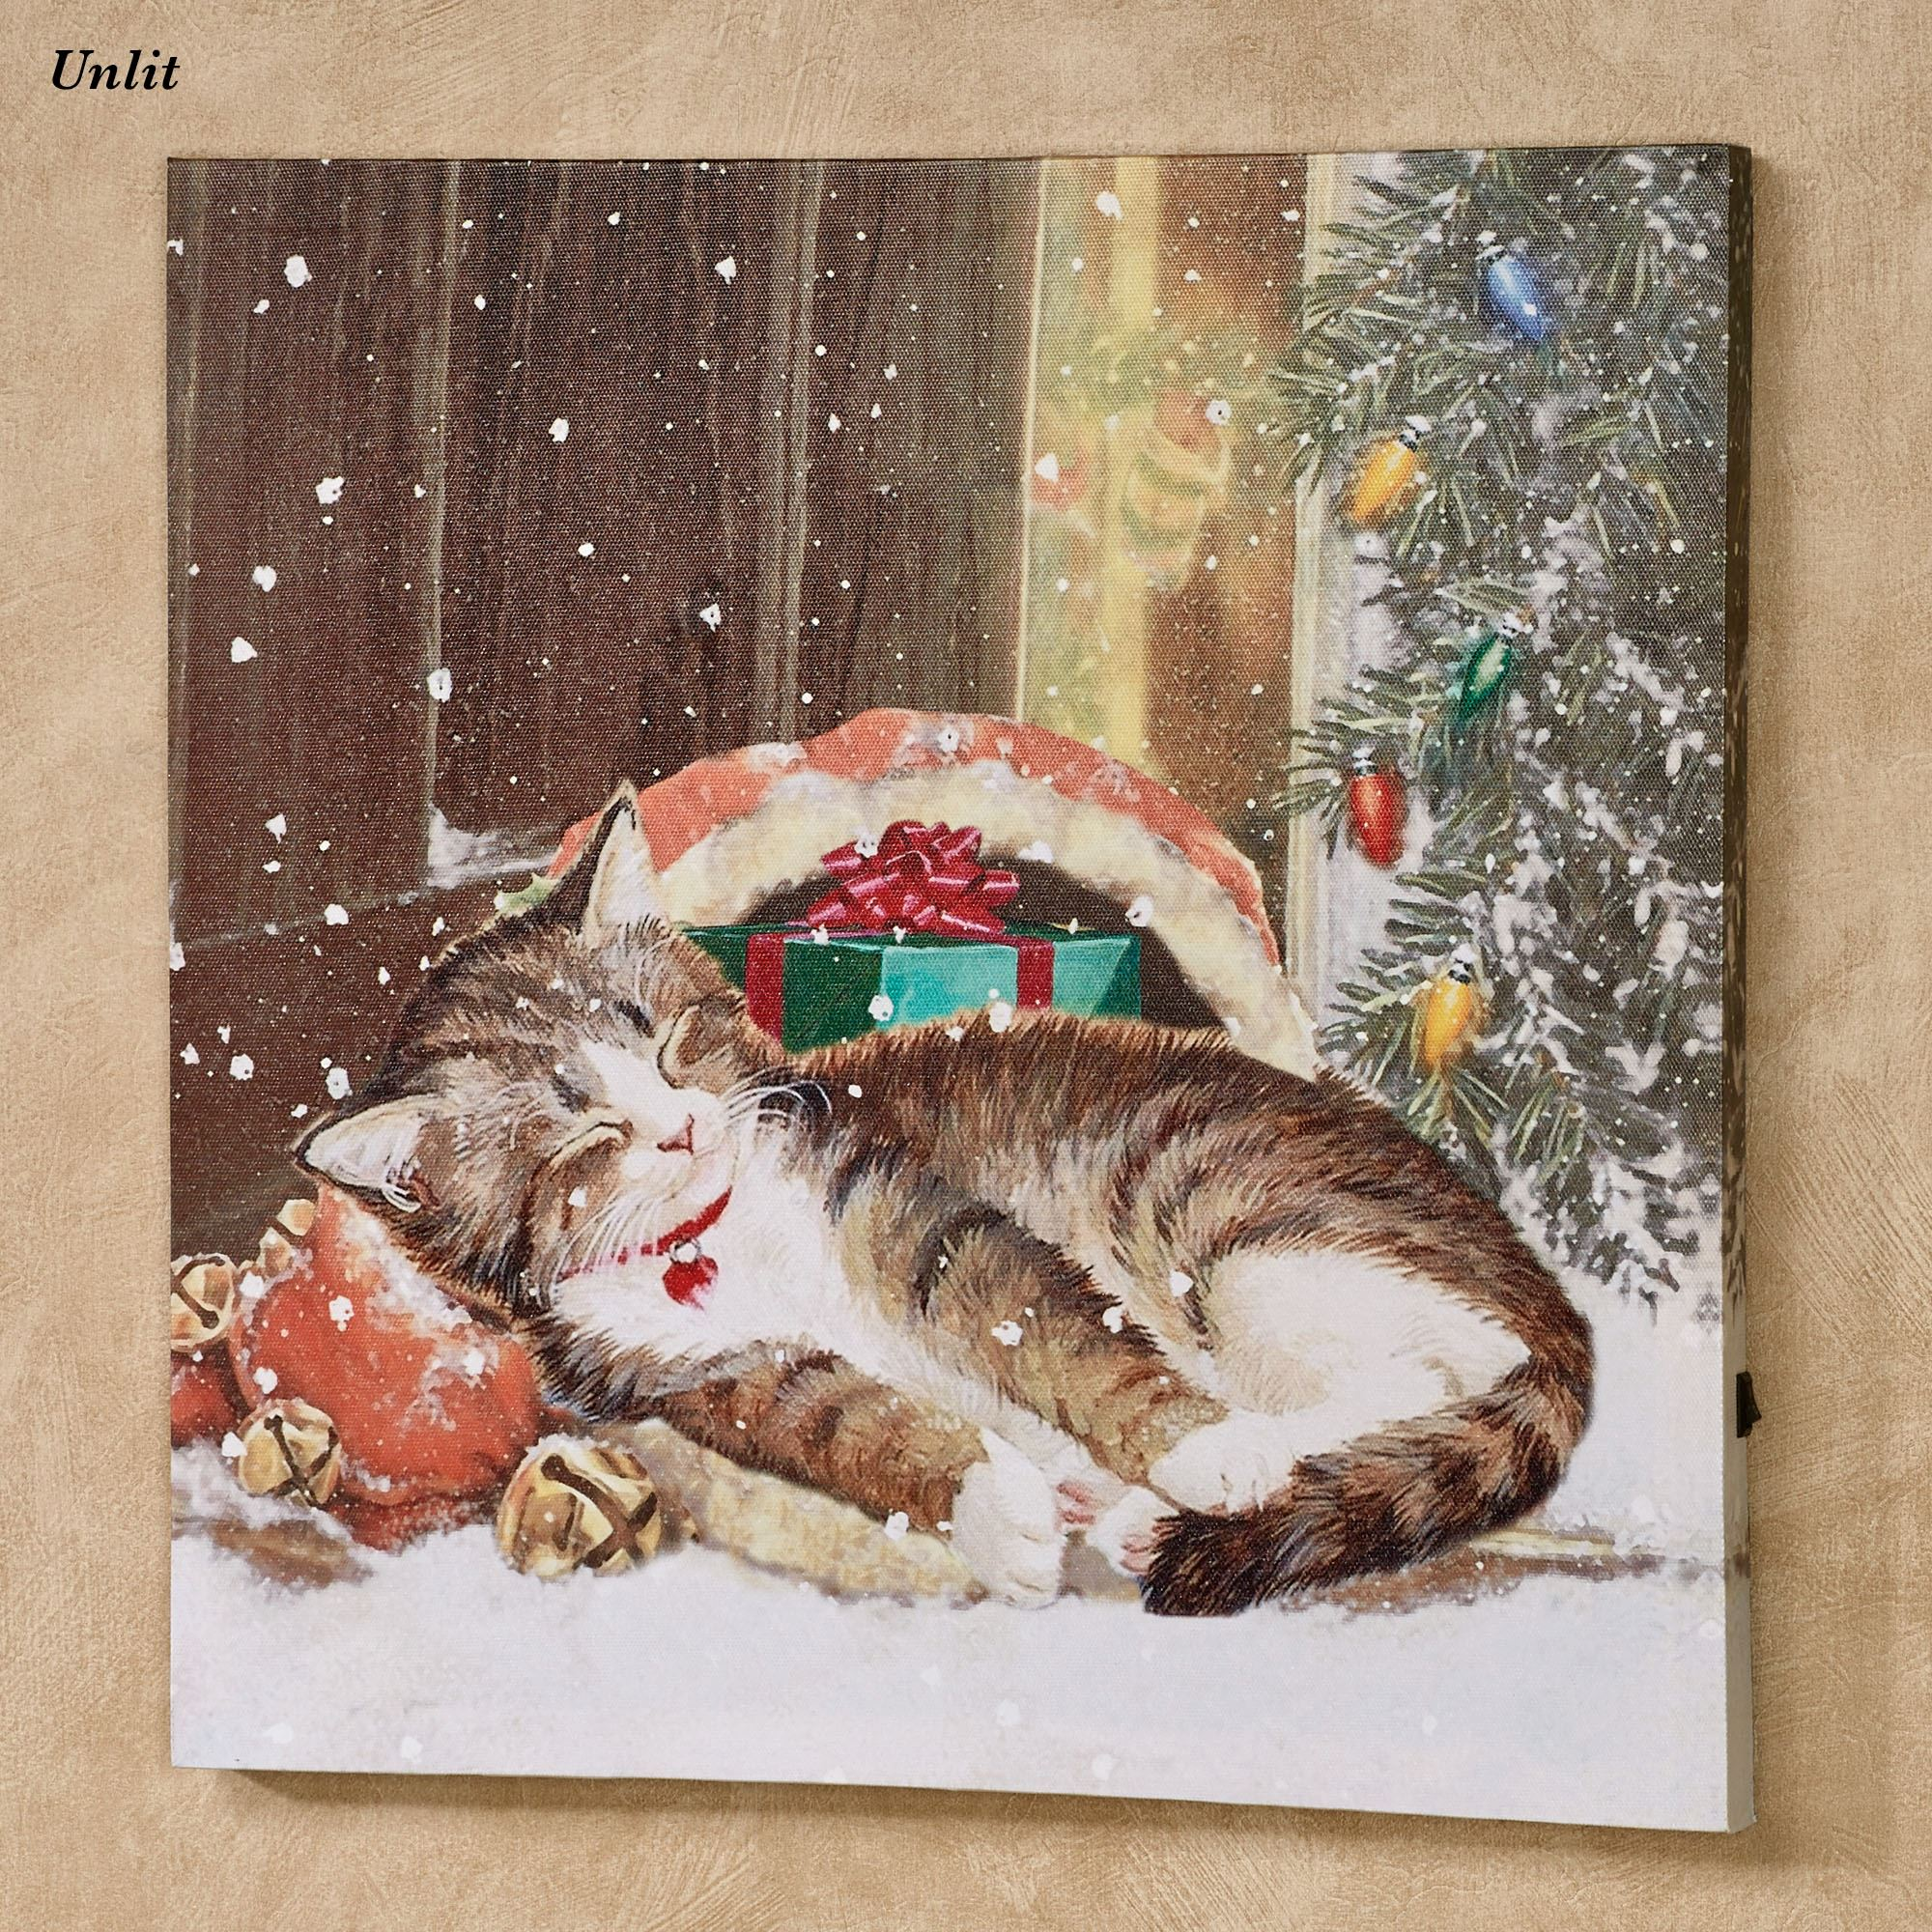 Christmas Led Canvas.Christmas Kitten Led Lighted Canvas Wall Art